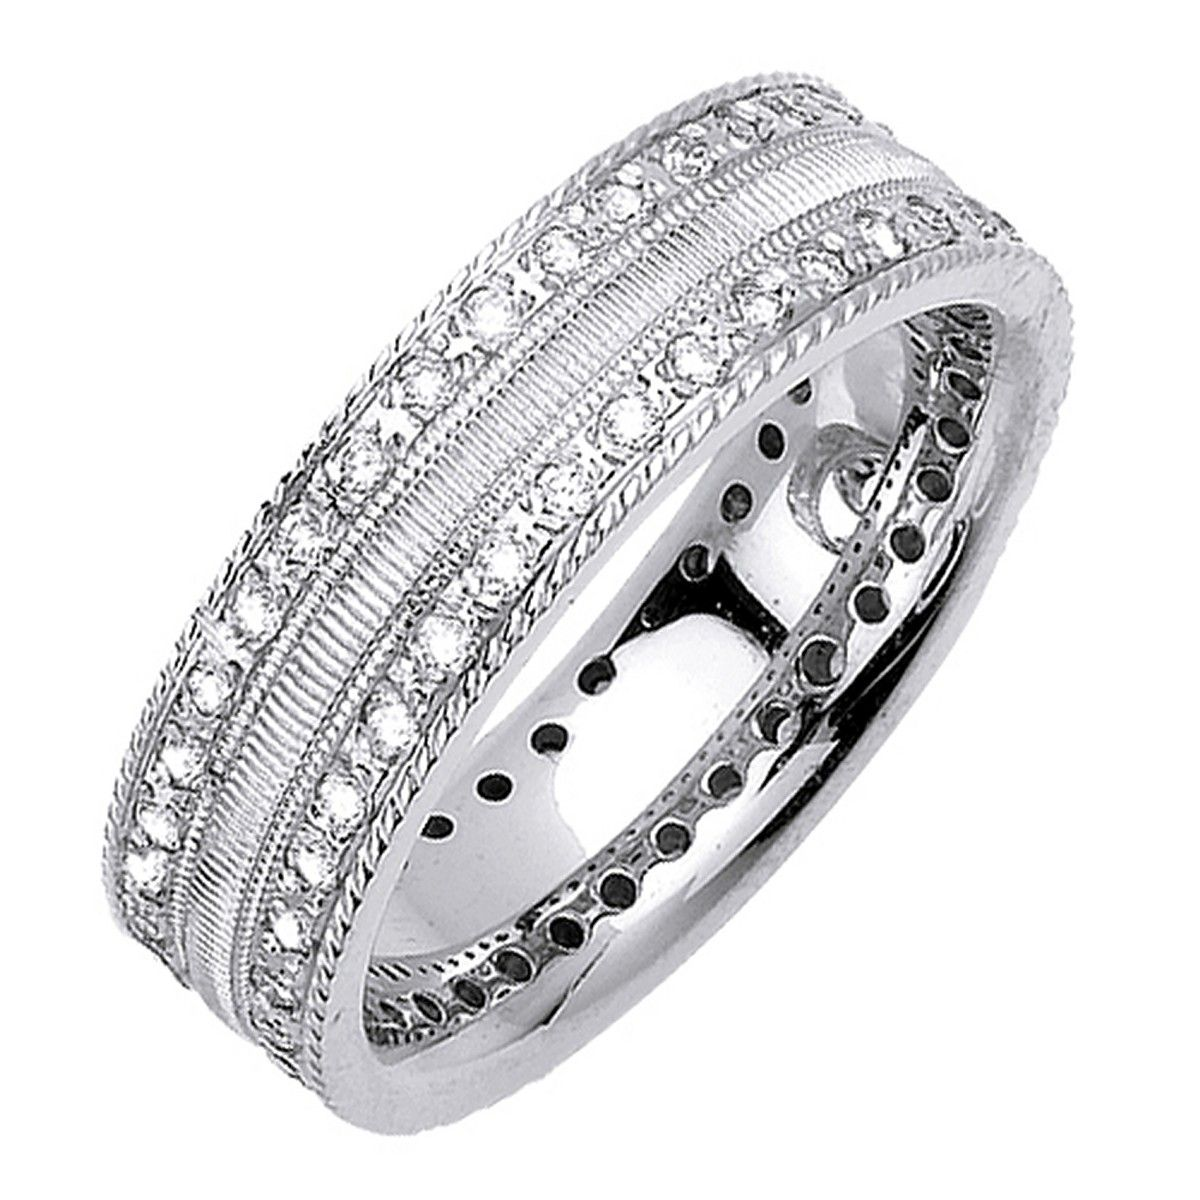 Diamond bangle diamond ring diamond bracelet diamond jewelry